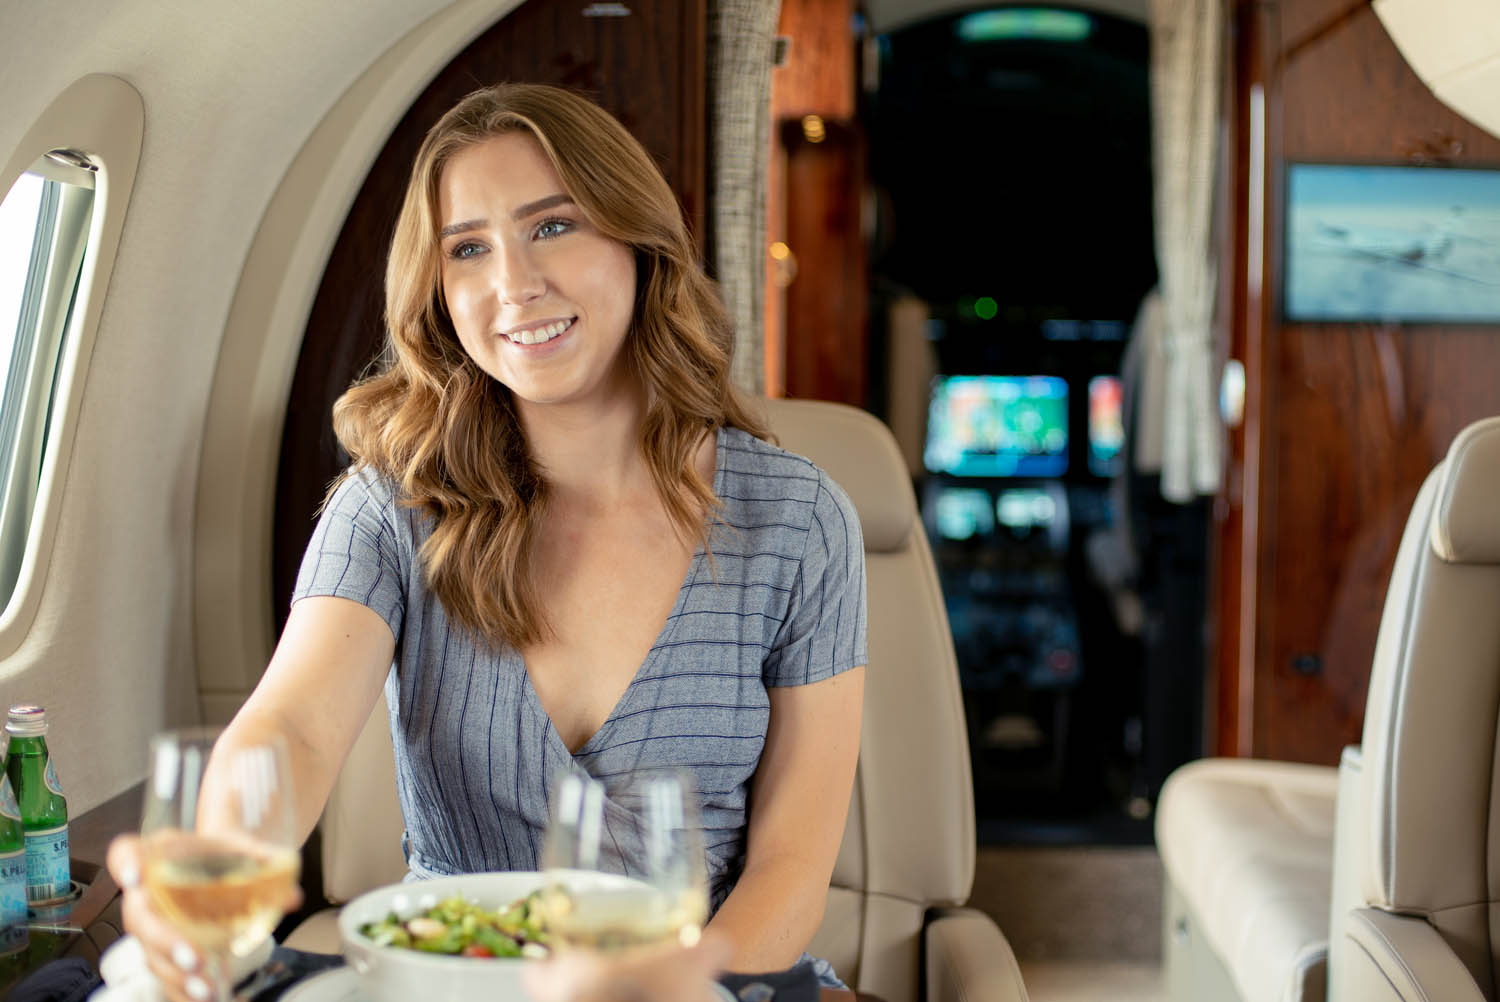 Girl on a private jet to Scottsdale with wine and salad